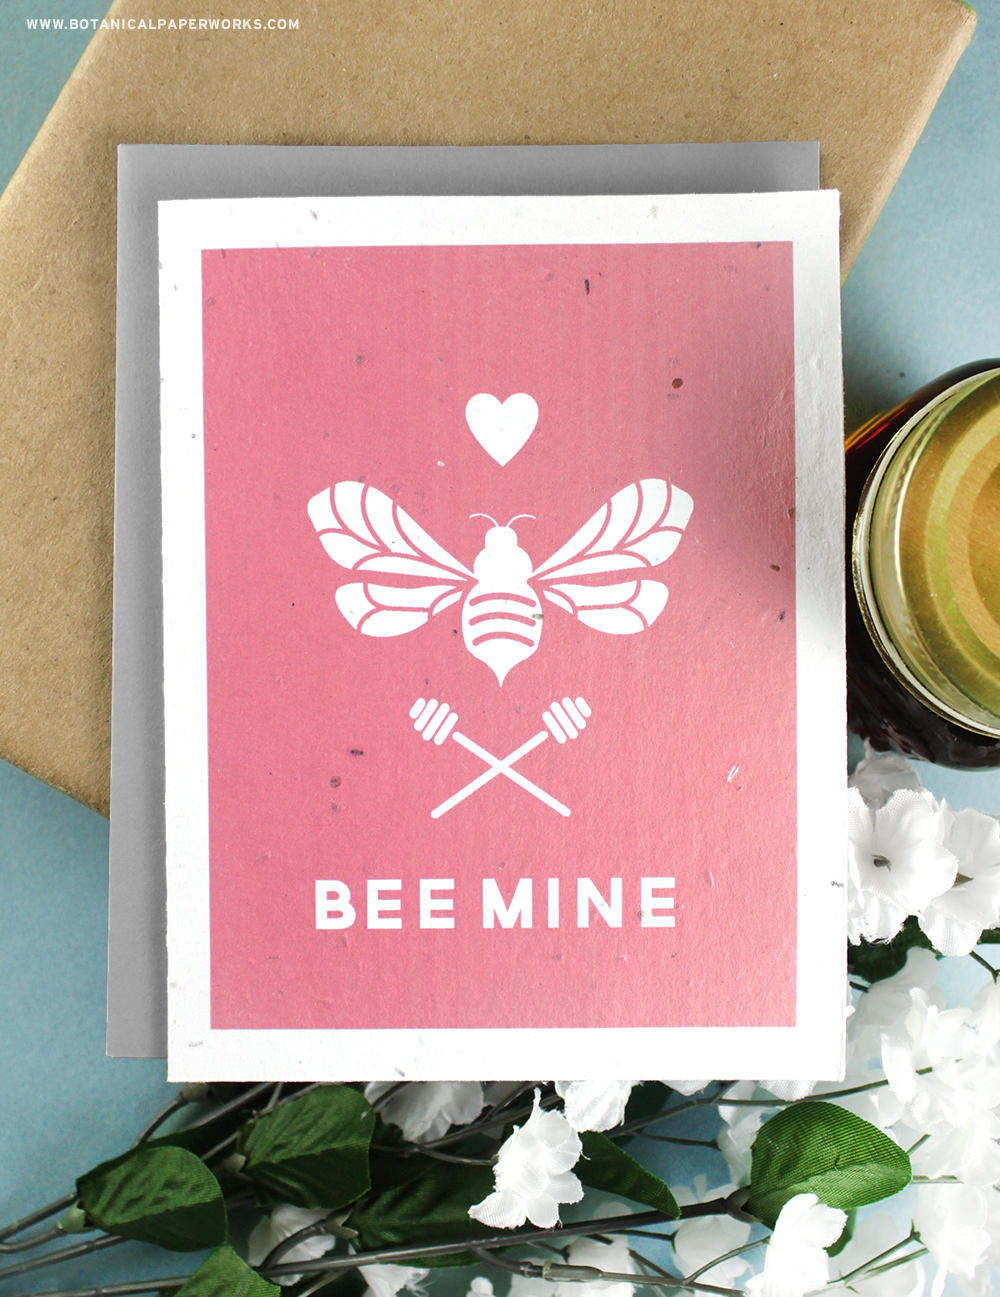 Help save bees and wish your sweetie a Happy Valentine's Day at the same time with these adorable Bee Mine Valentine's Day Cards printed on eco-friendly seed paper.